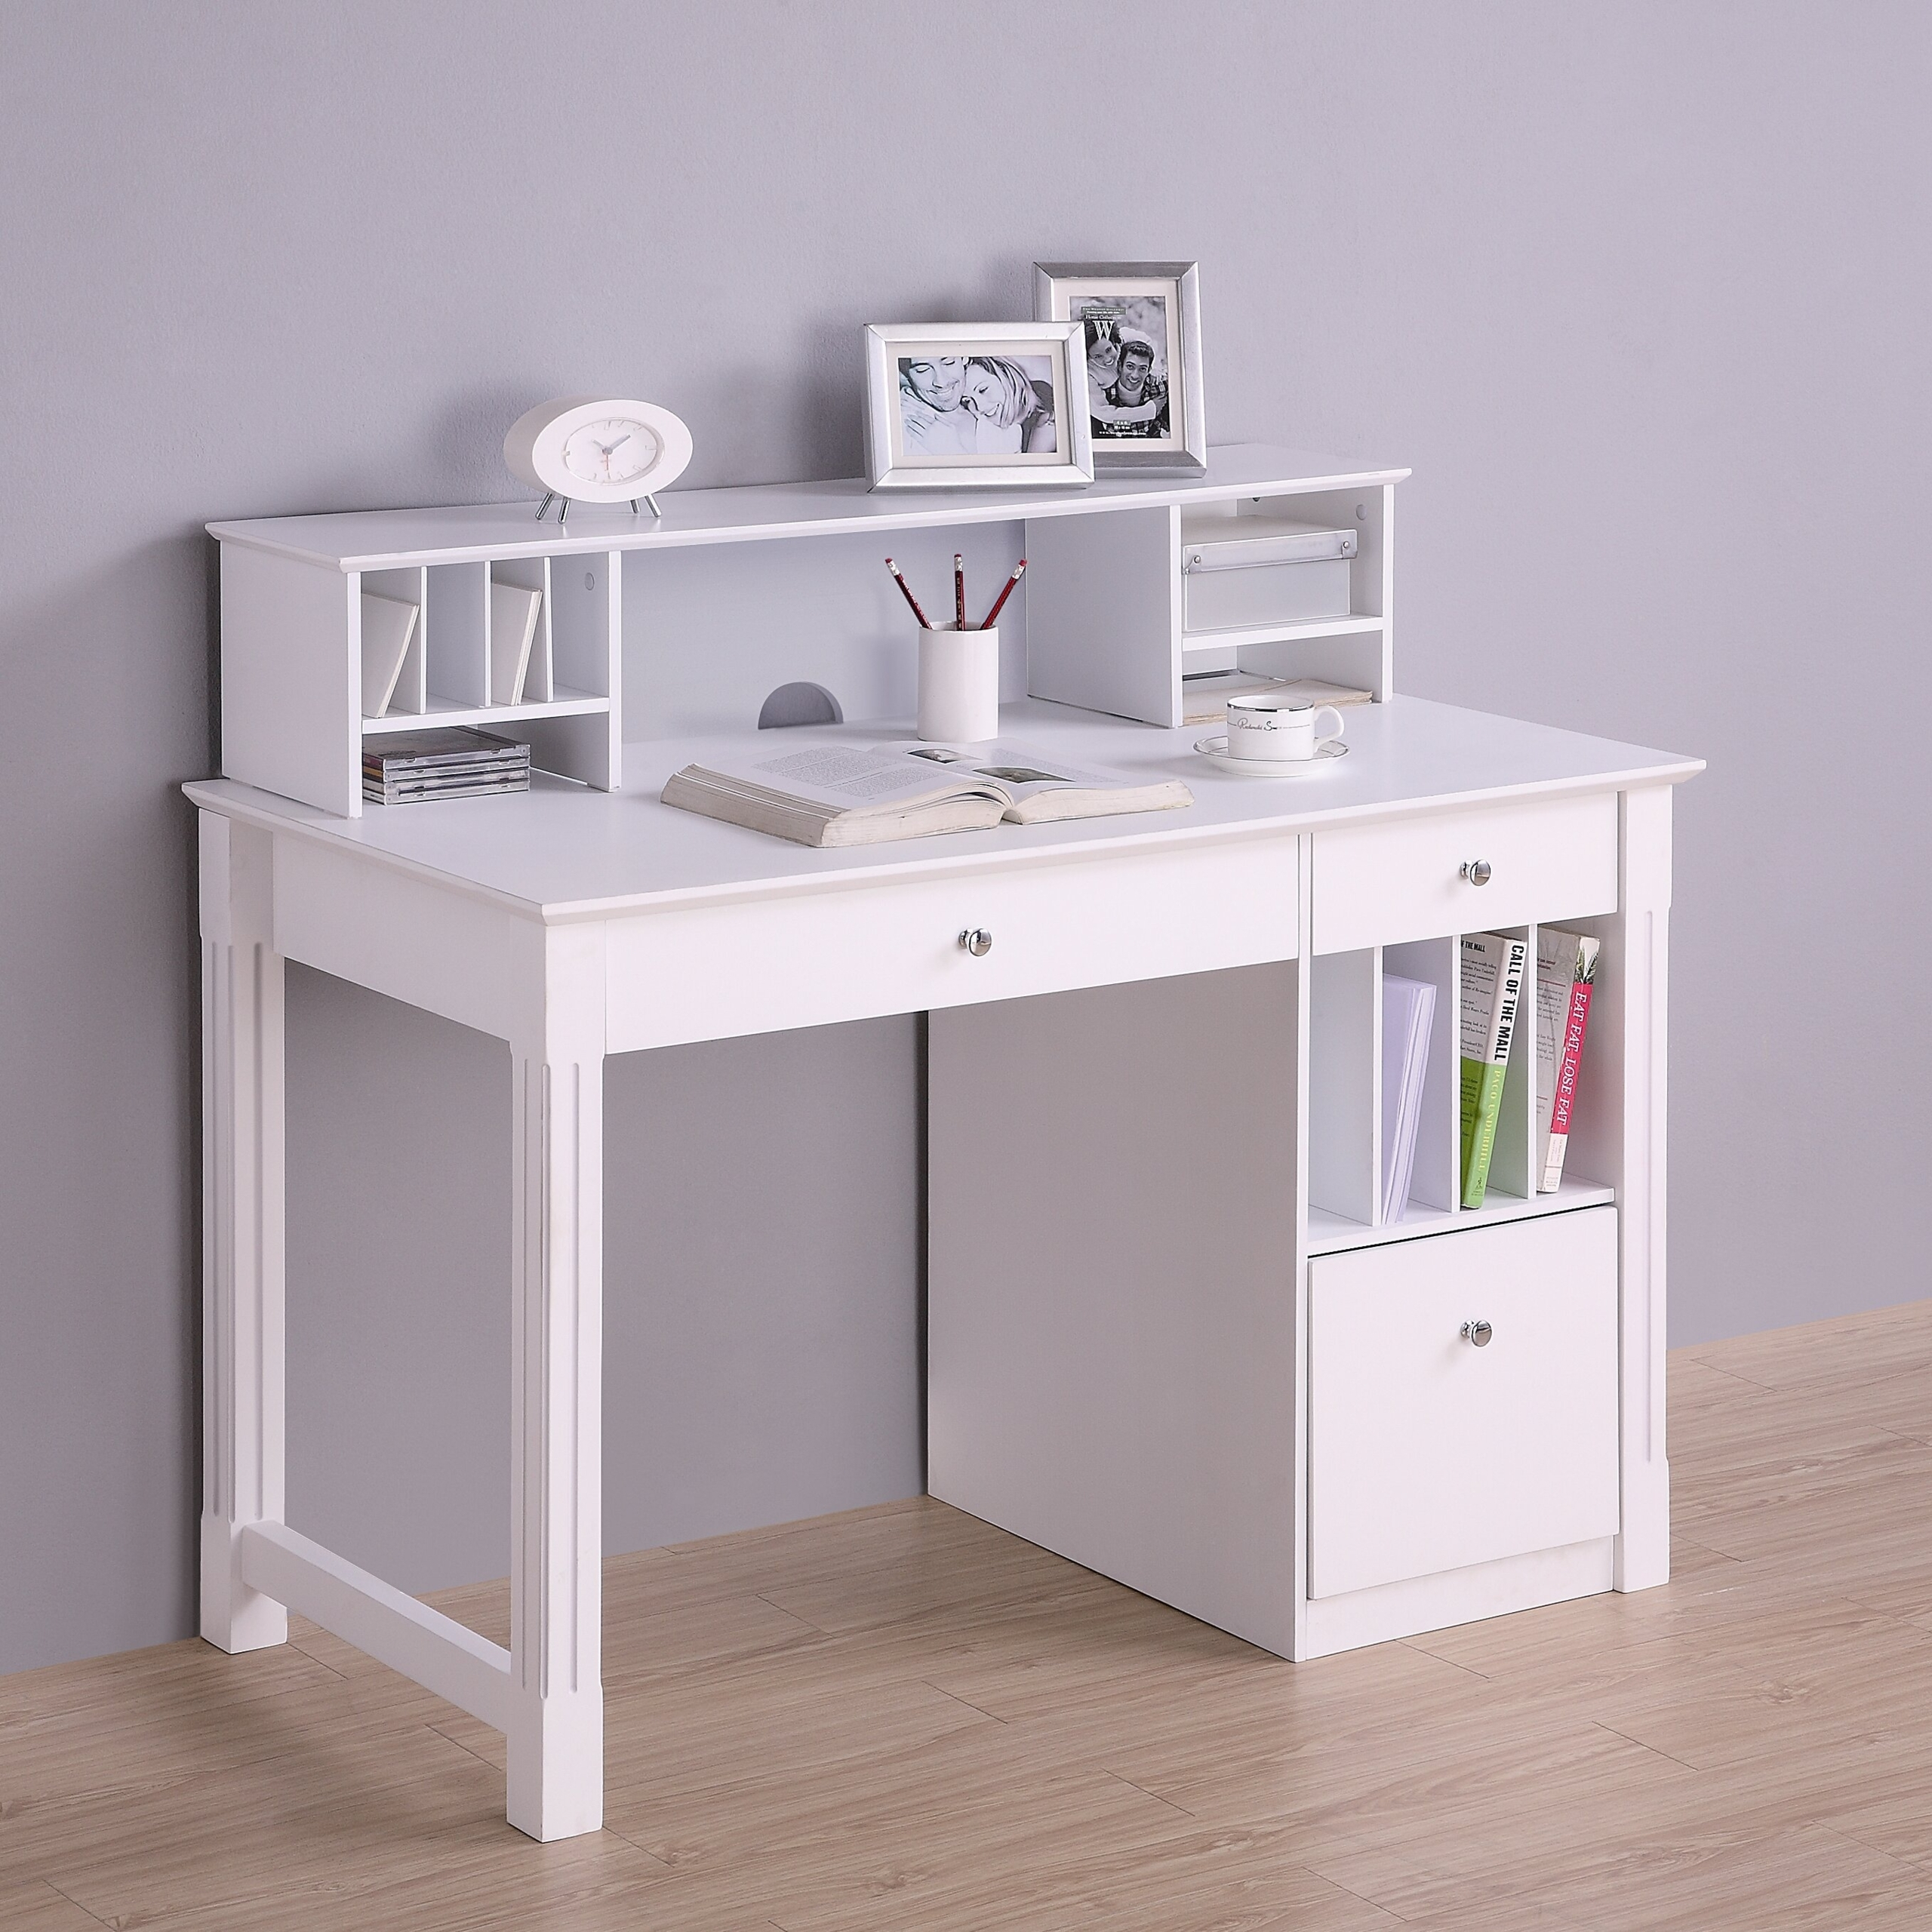 Image of: Kids White Desk With Hutch For 2020 Ideas On Foter